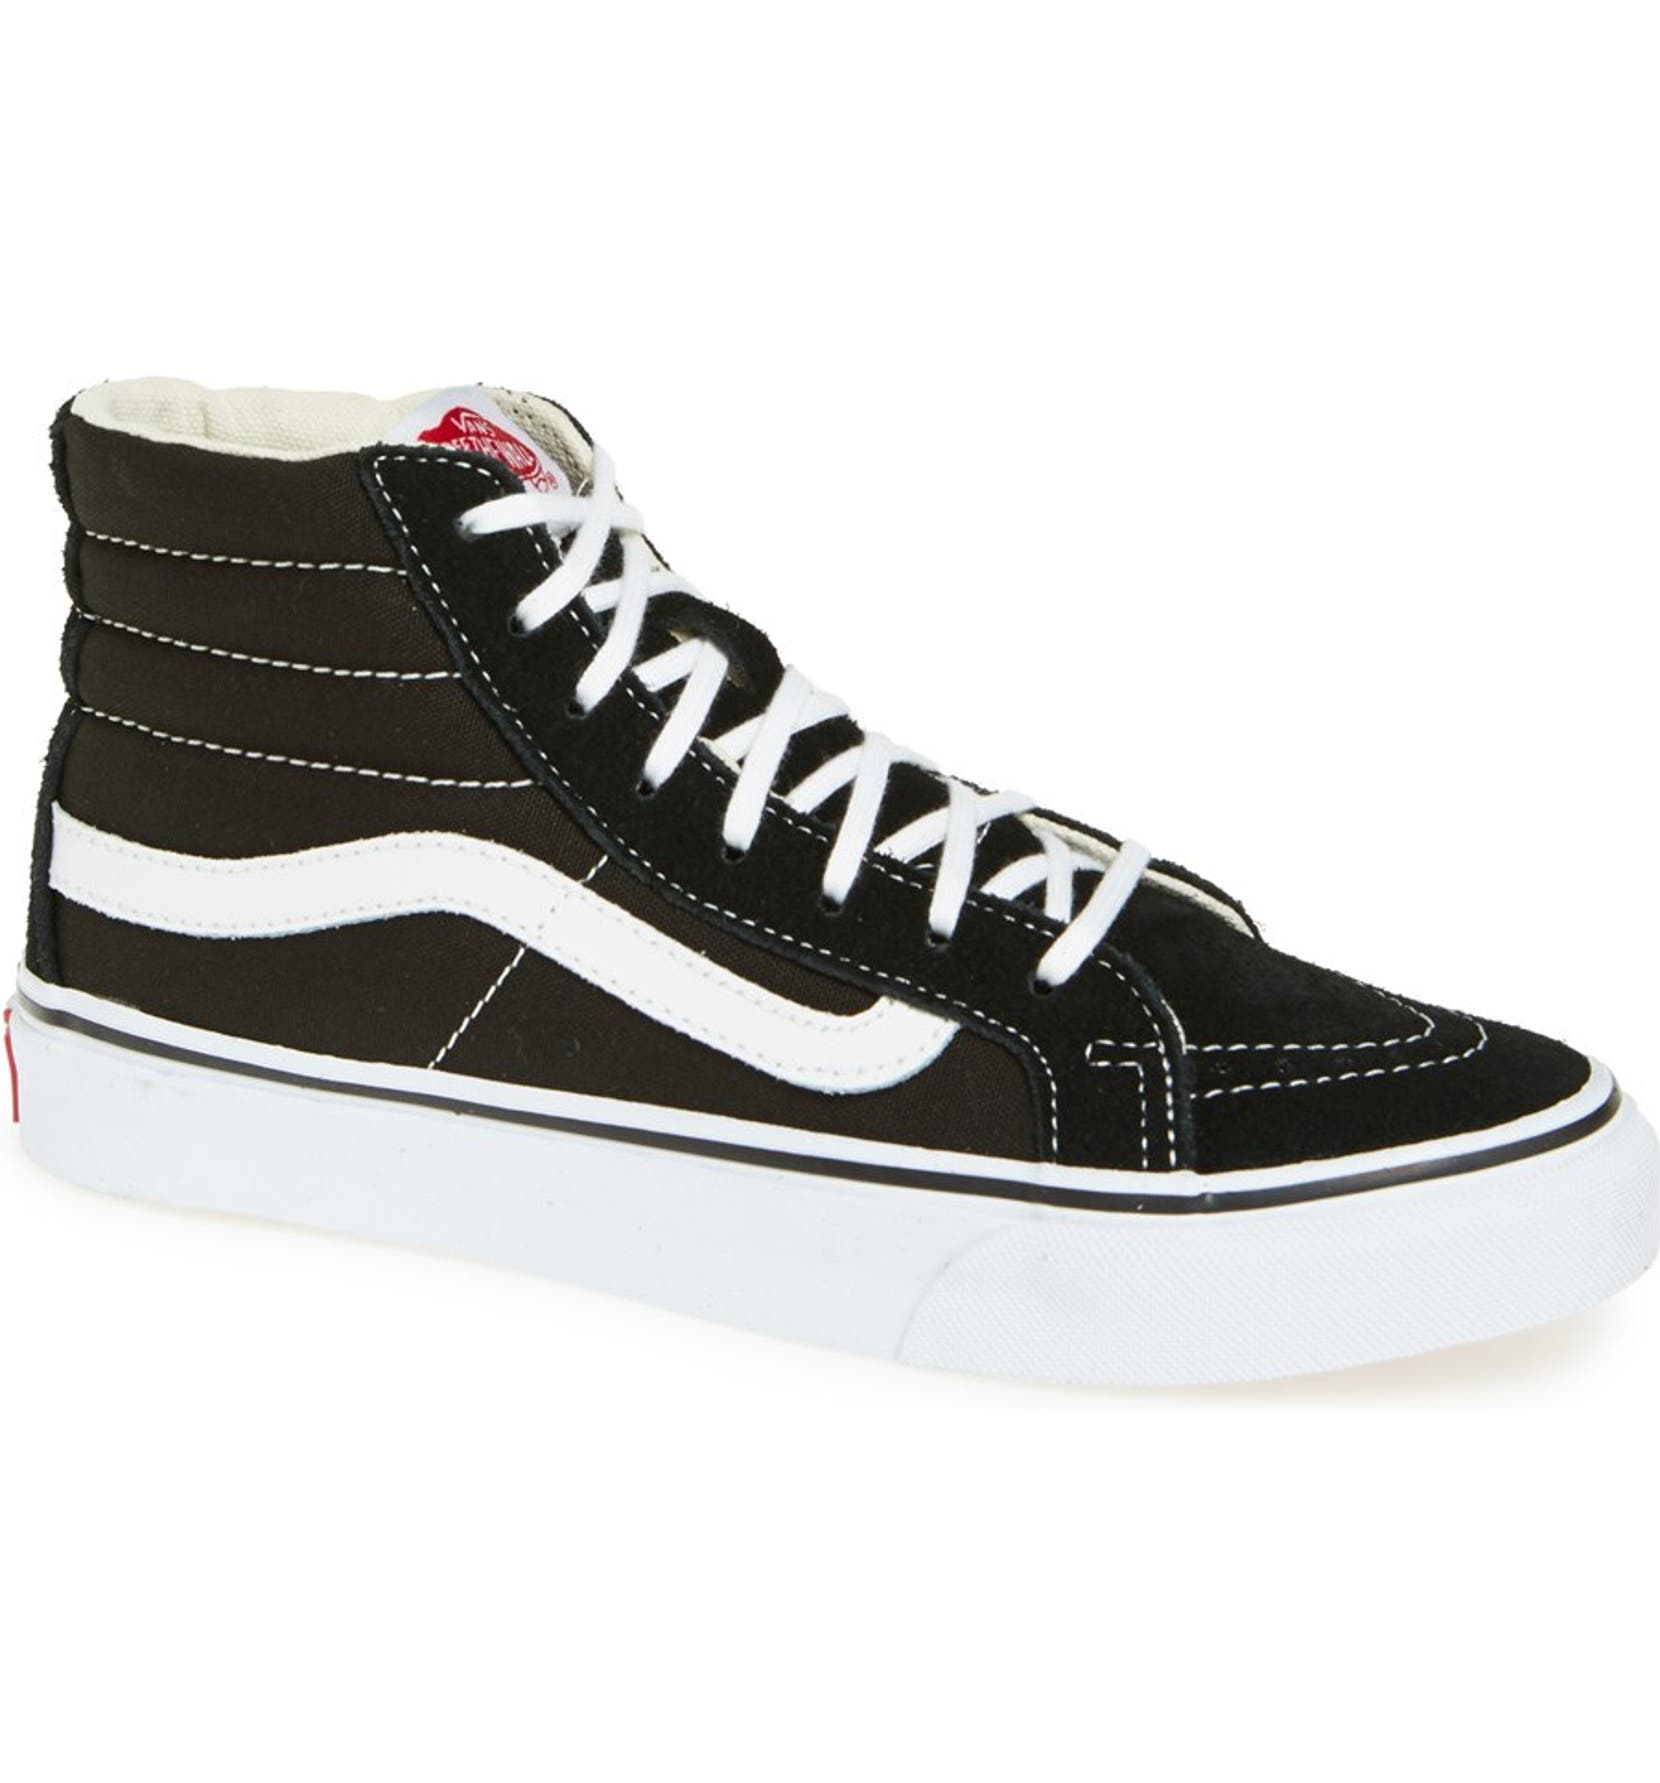 dfae925ba2 Vans Sk8-Hi Slim High Top Sneaker (Women)